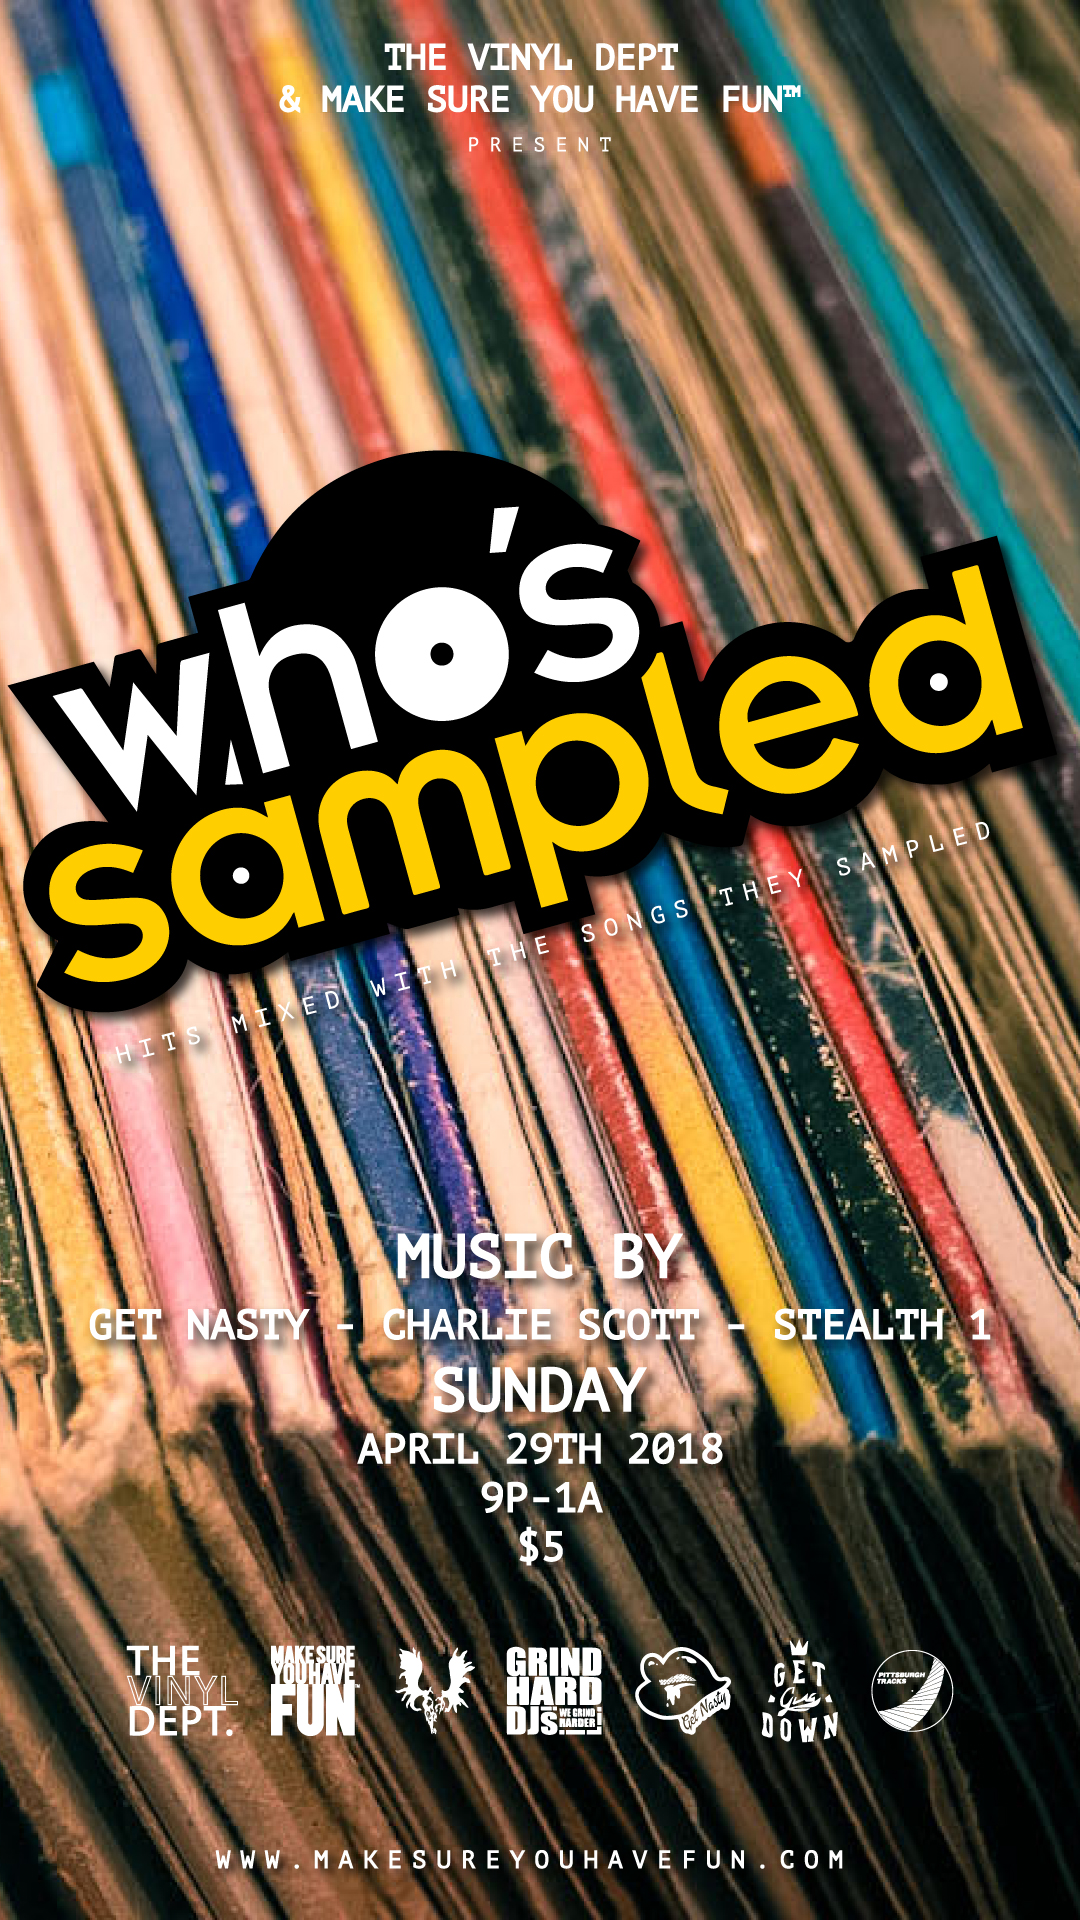 Whos-Sampled-April-2018-IG-Story-Flyer.jpg